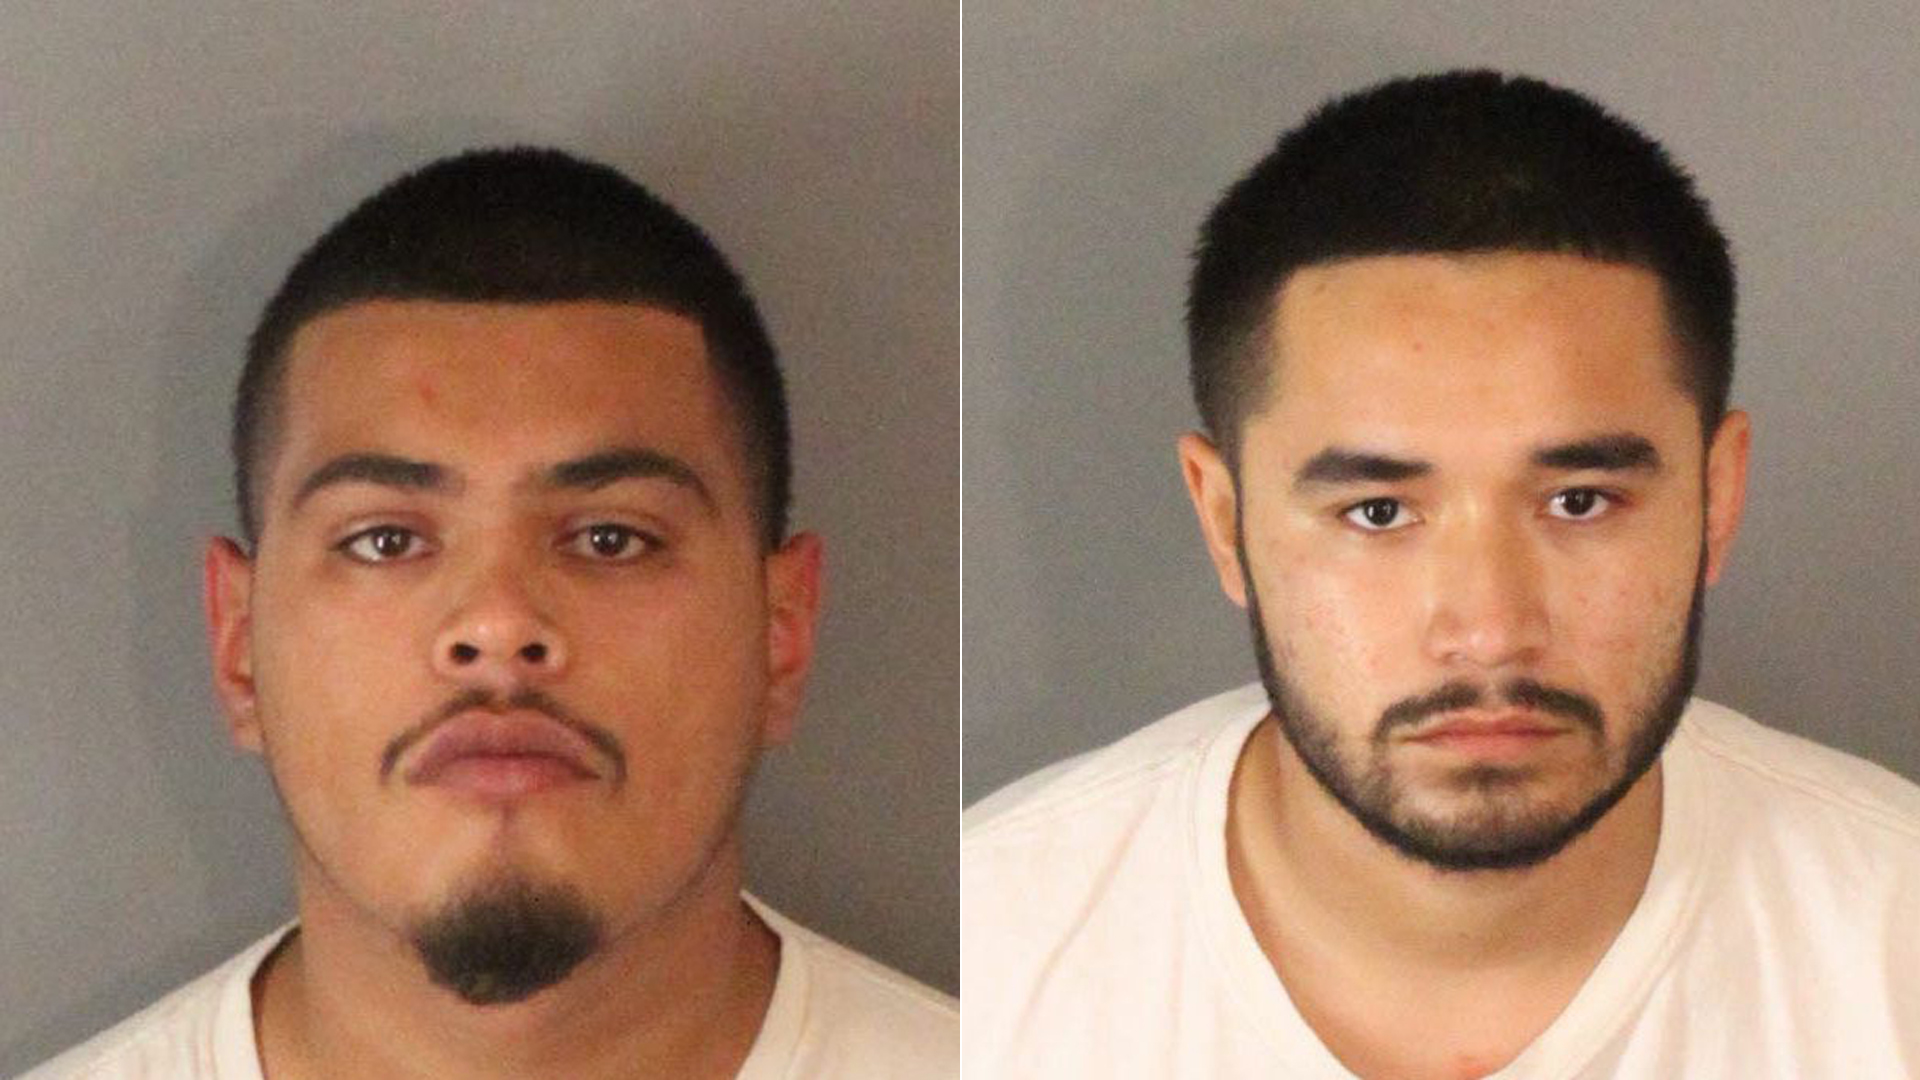 Jose Landeros, left, and David Martinez are shown in photos released by the Riverside Police Department on Oct. 9, 2018.